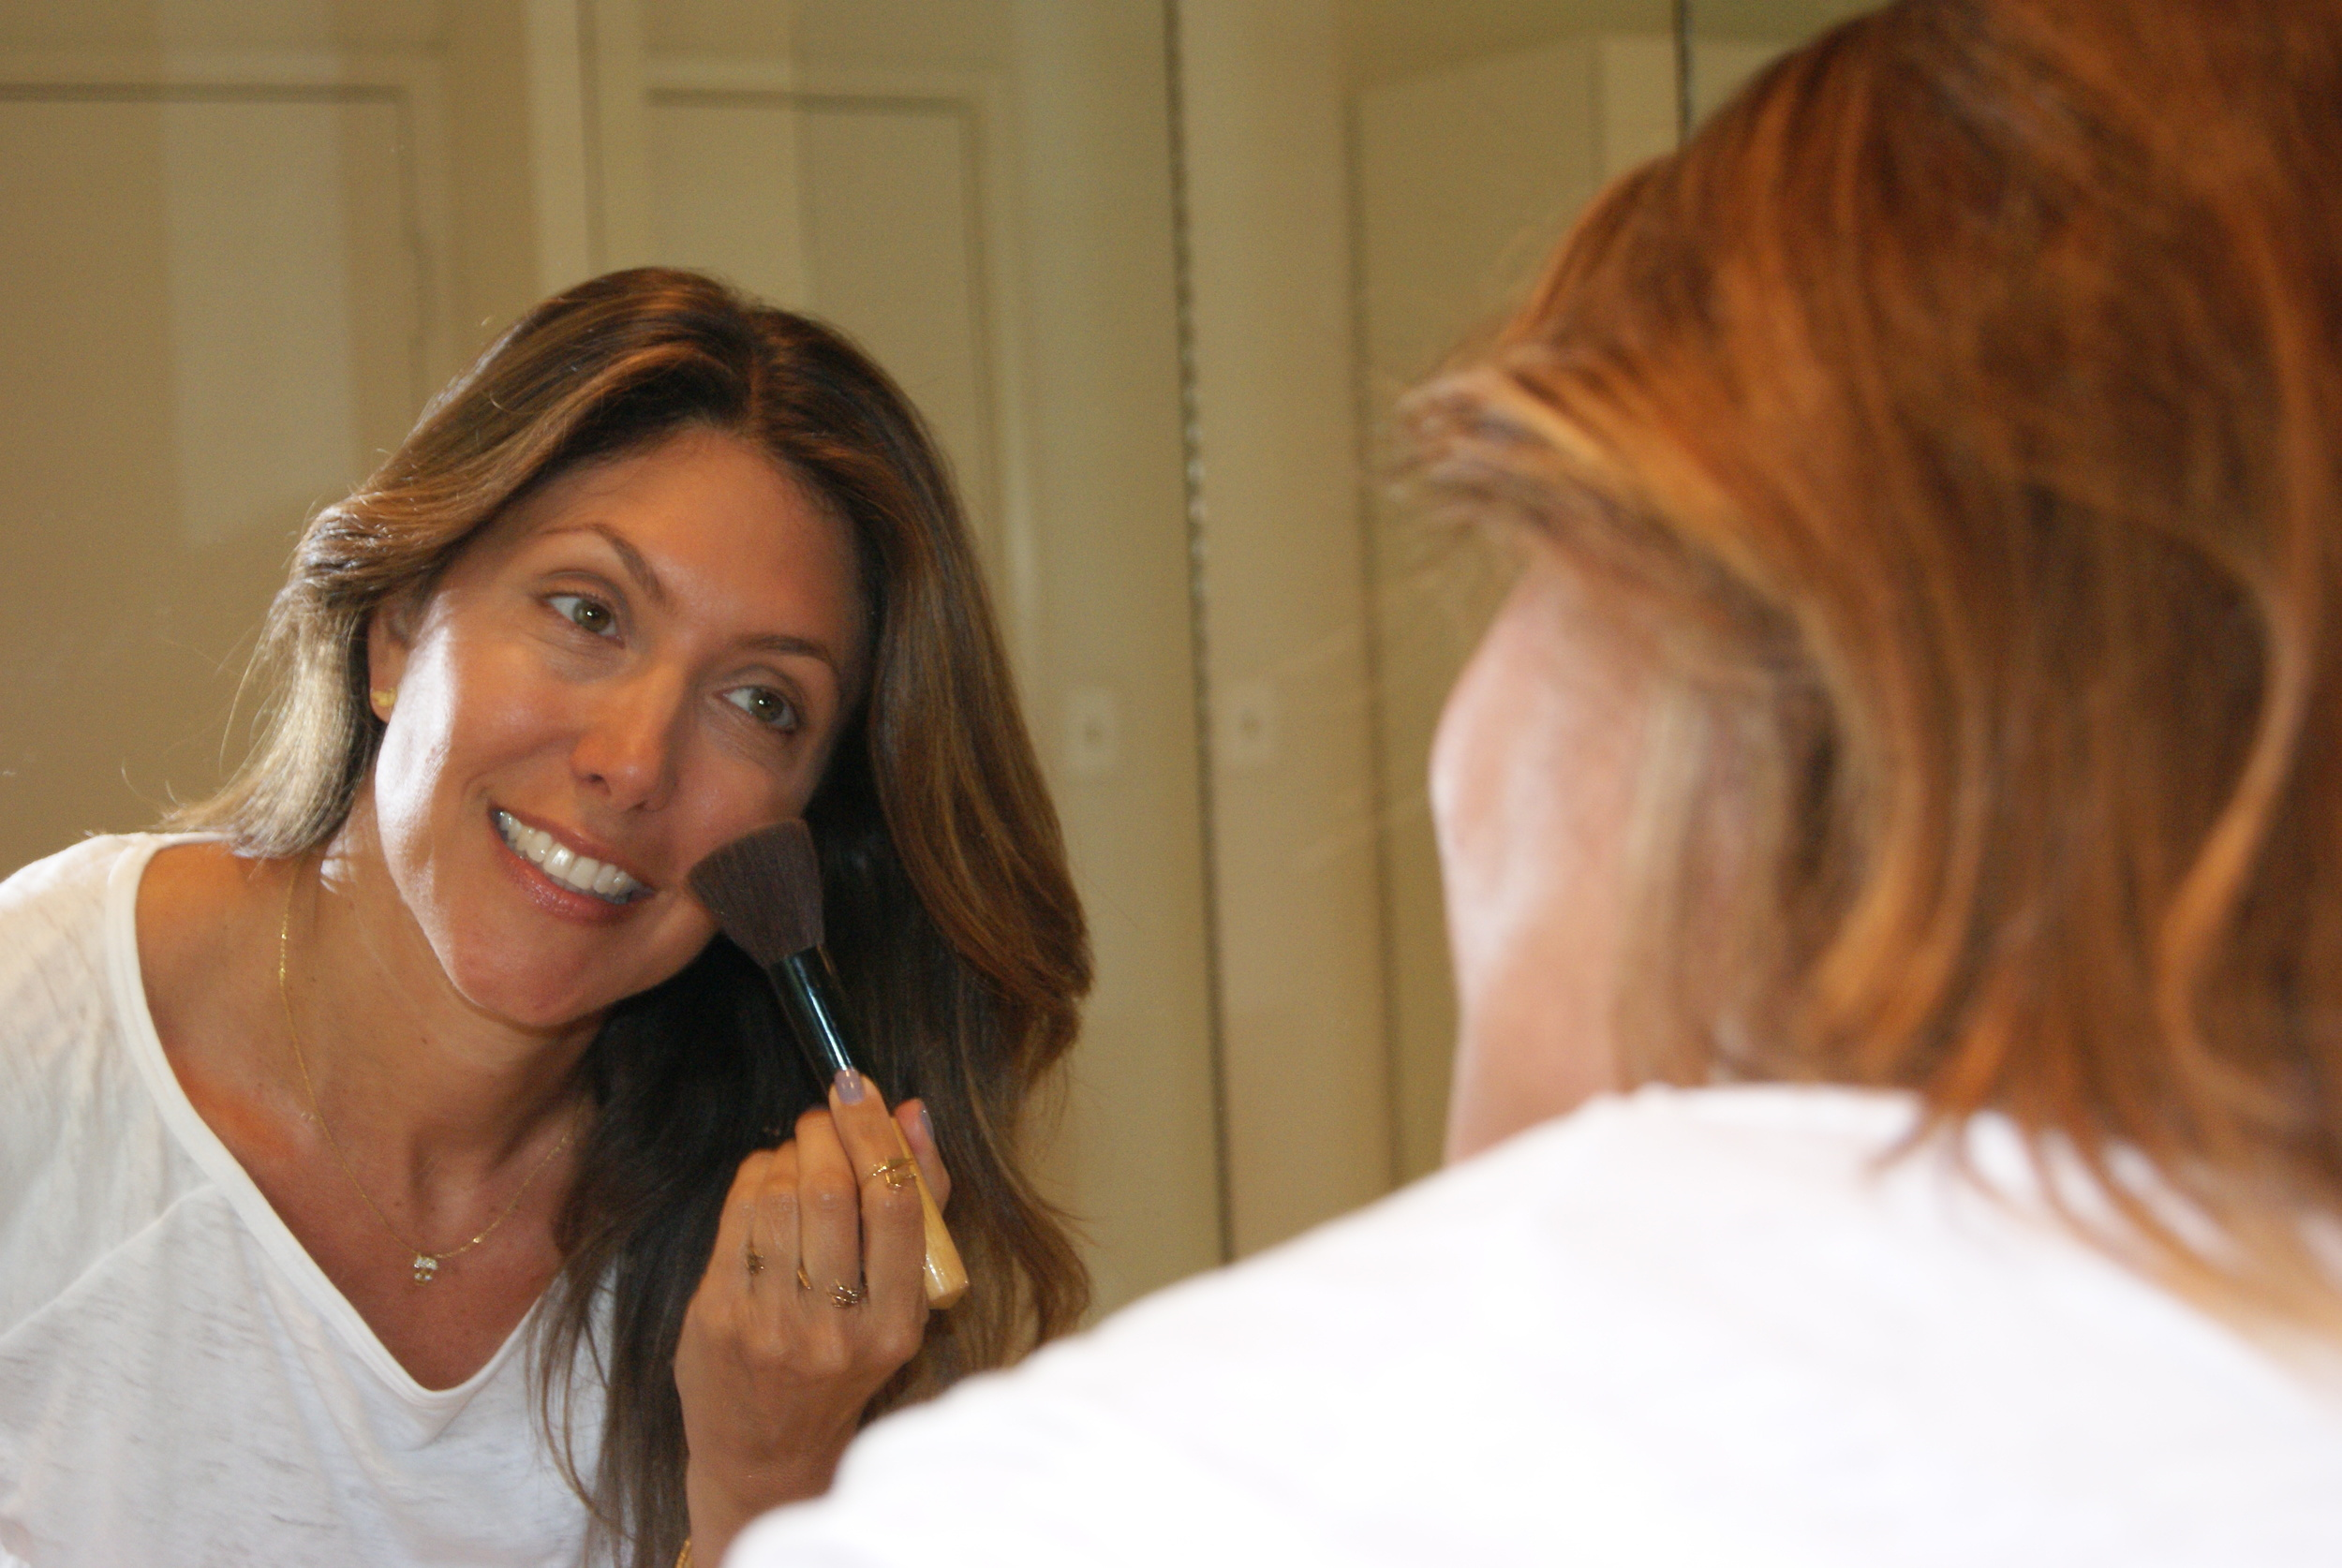 Apply bronzer all over face after using your favorite foundation and  concealing under eye circles and blemishes.